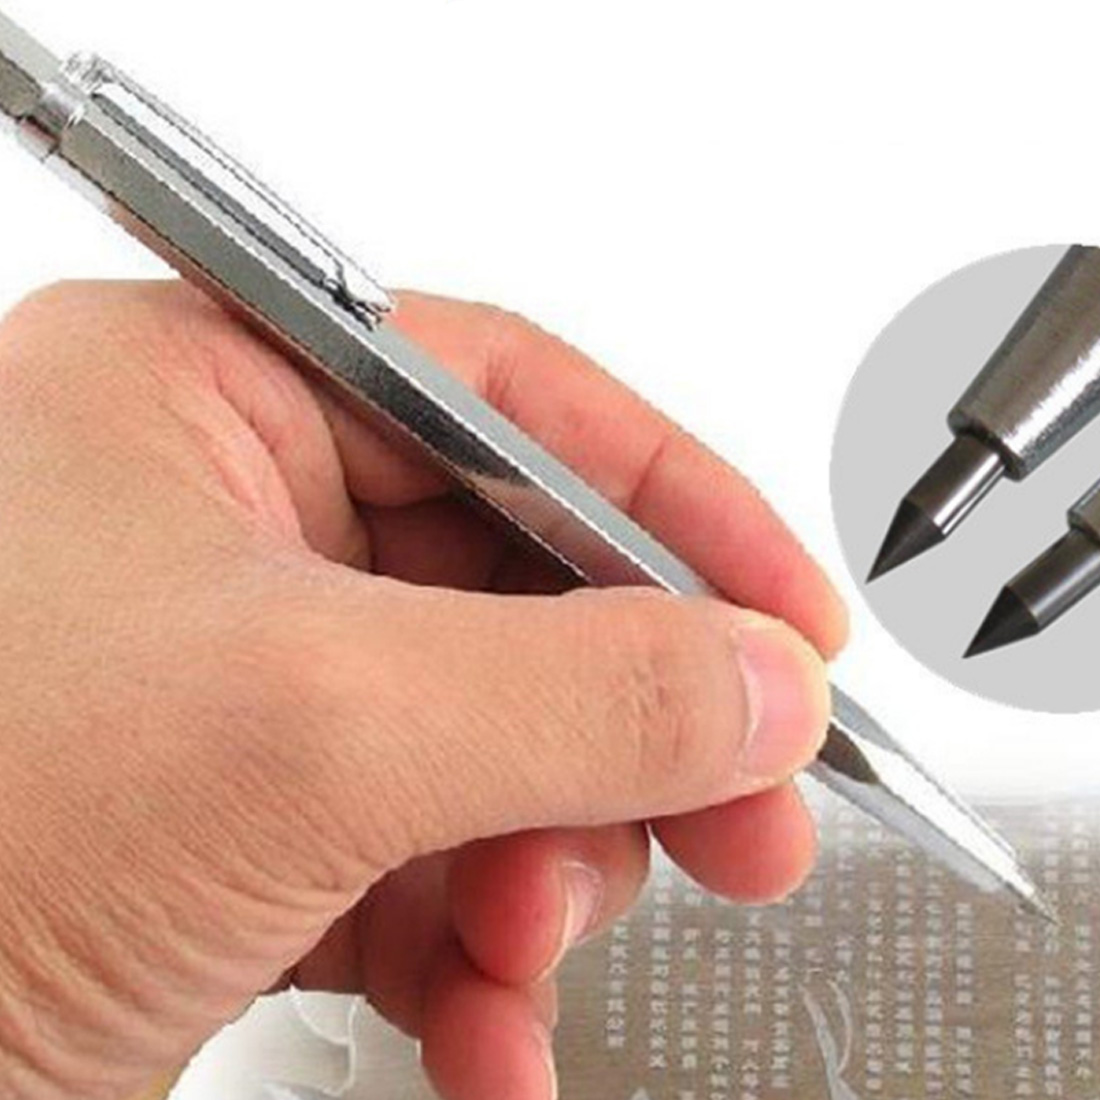 New Arrival Tungsten Carbide Tip Scriber Etching Pen Carve Glass silicon quartz Engraver Metal Tool tungsten carbide tip scriber etching pen carve jewelry engraver metal tool best quality